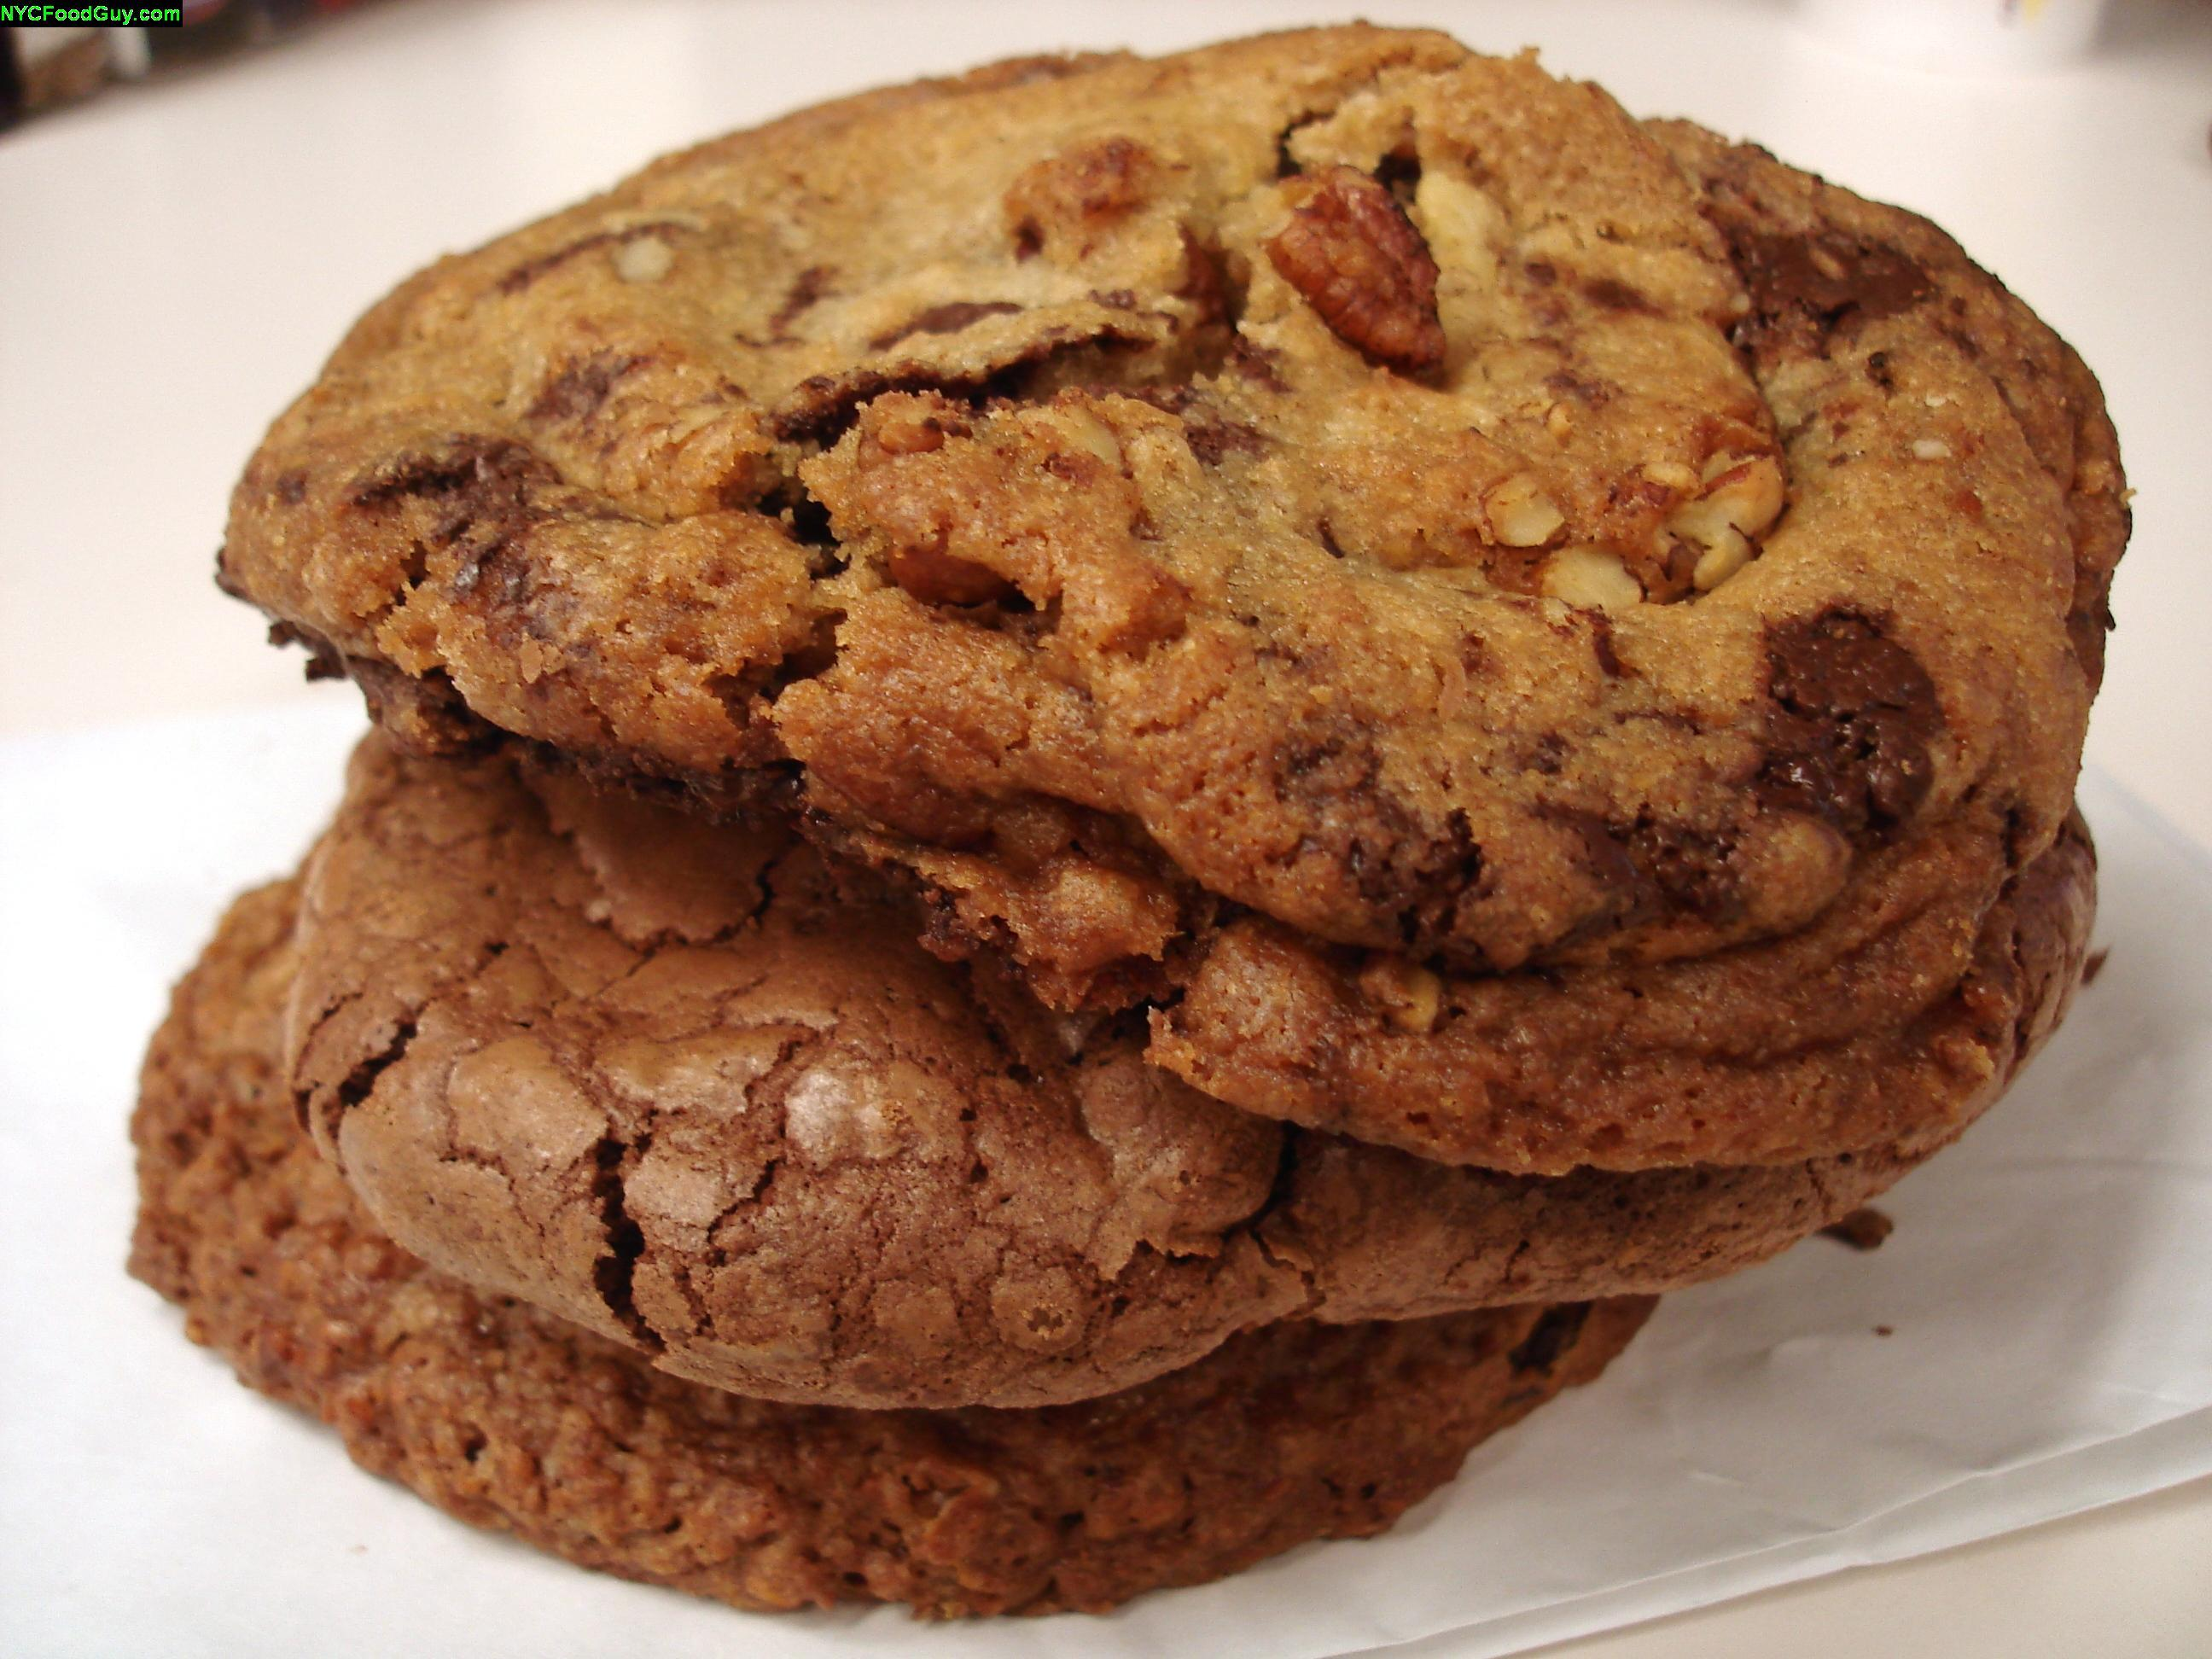 NYC Cookies: Petrossian is no Levain but… | NYC Food Guy